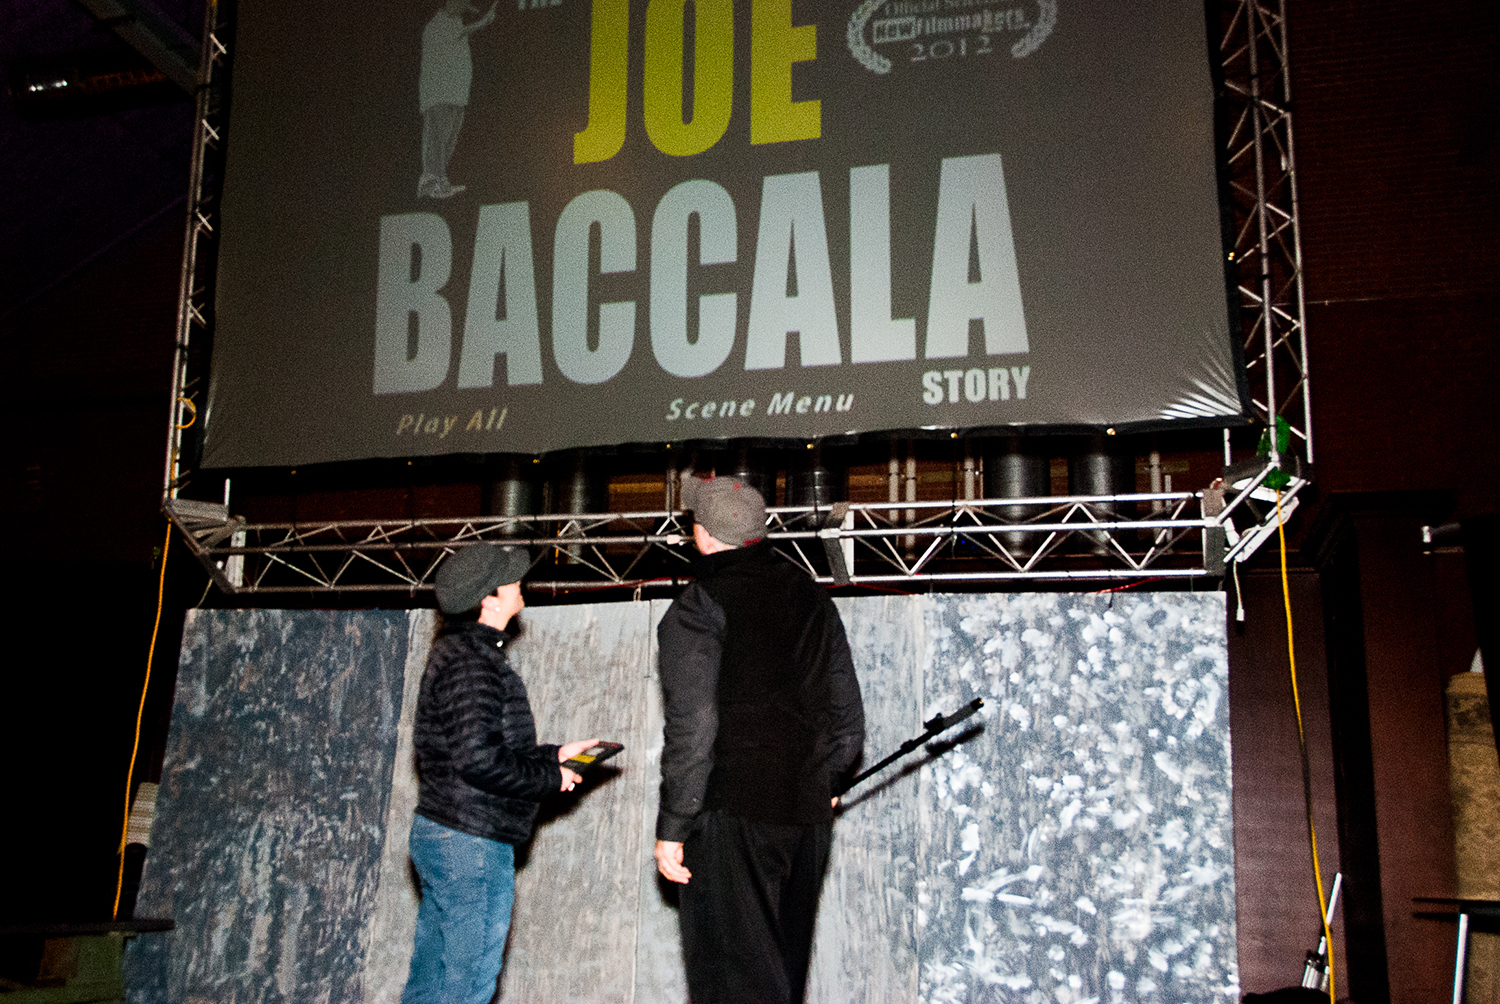 Stacey Forbes Iwanicki and Rocco Mesiti gaze at 'The Joe Baccala Story' on the big screen at Boston Indie Mafia event, March 2015. Photo by Light Filters Studio.